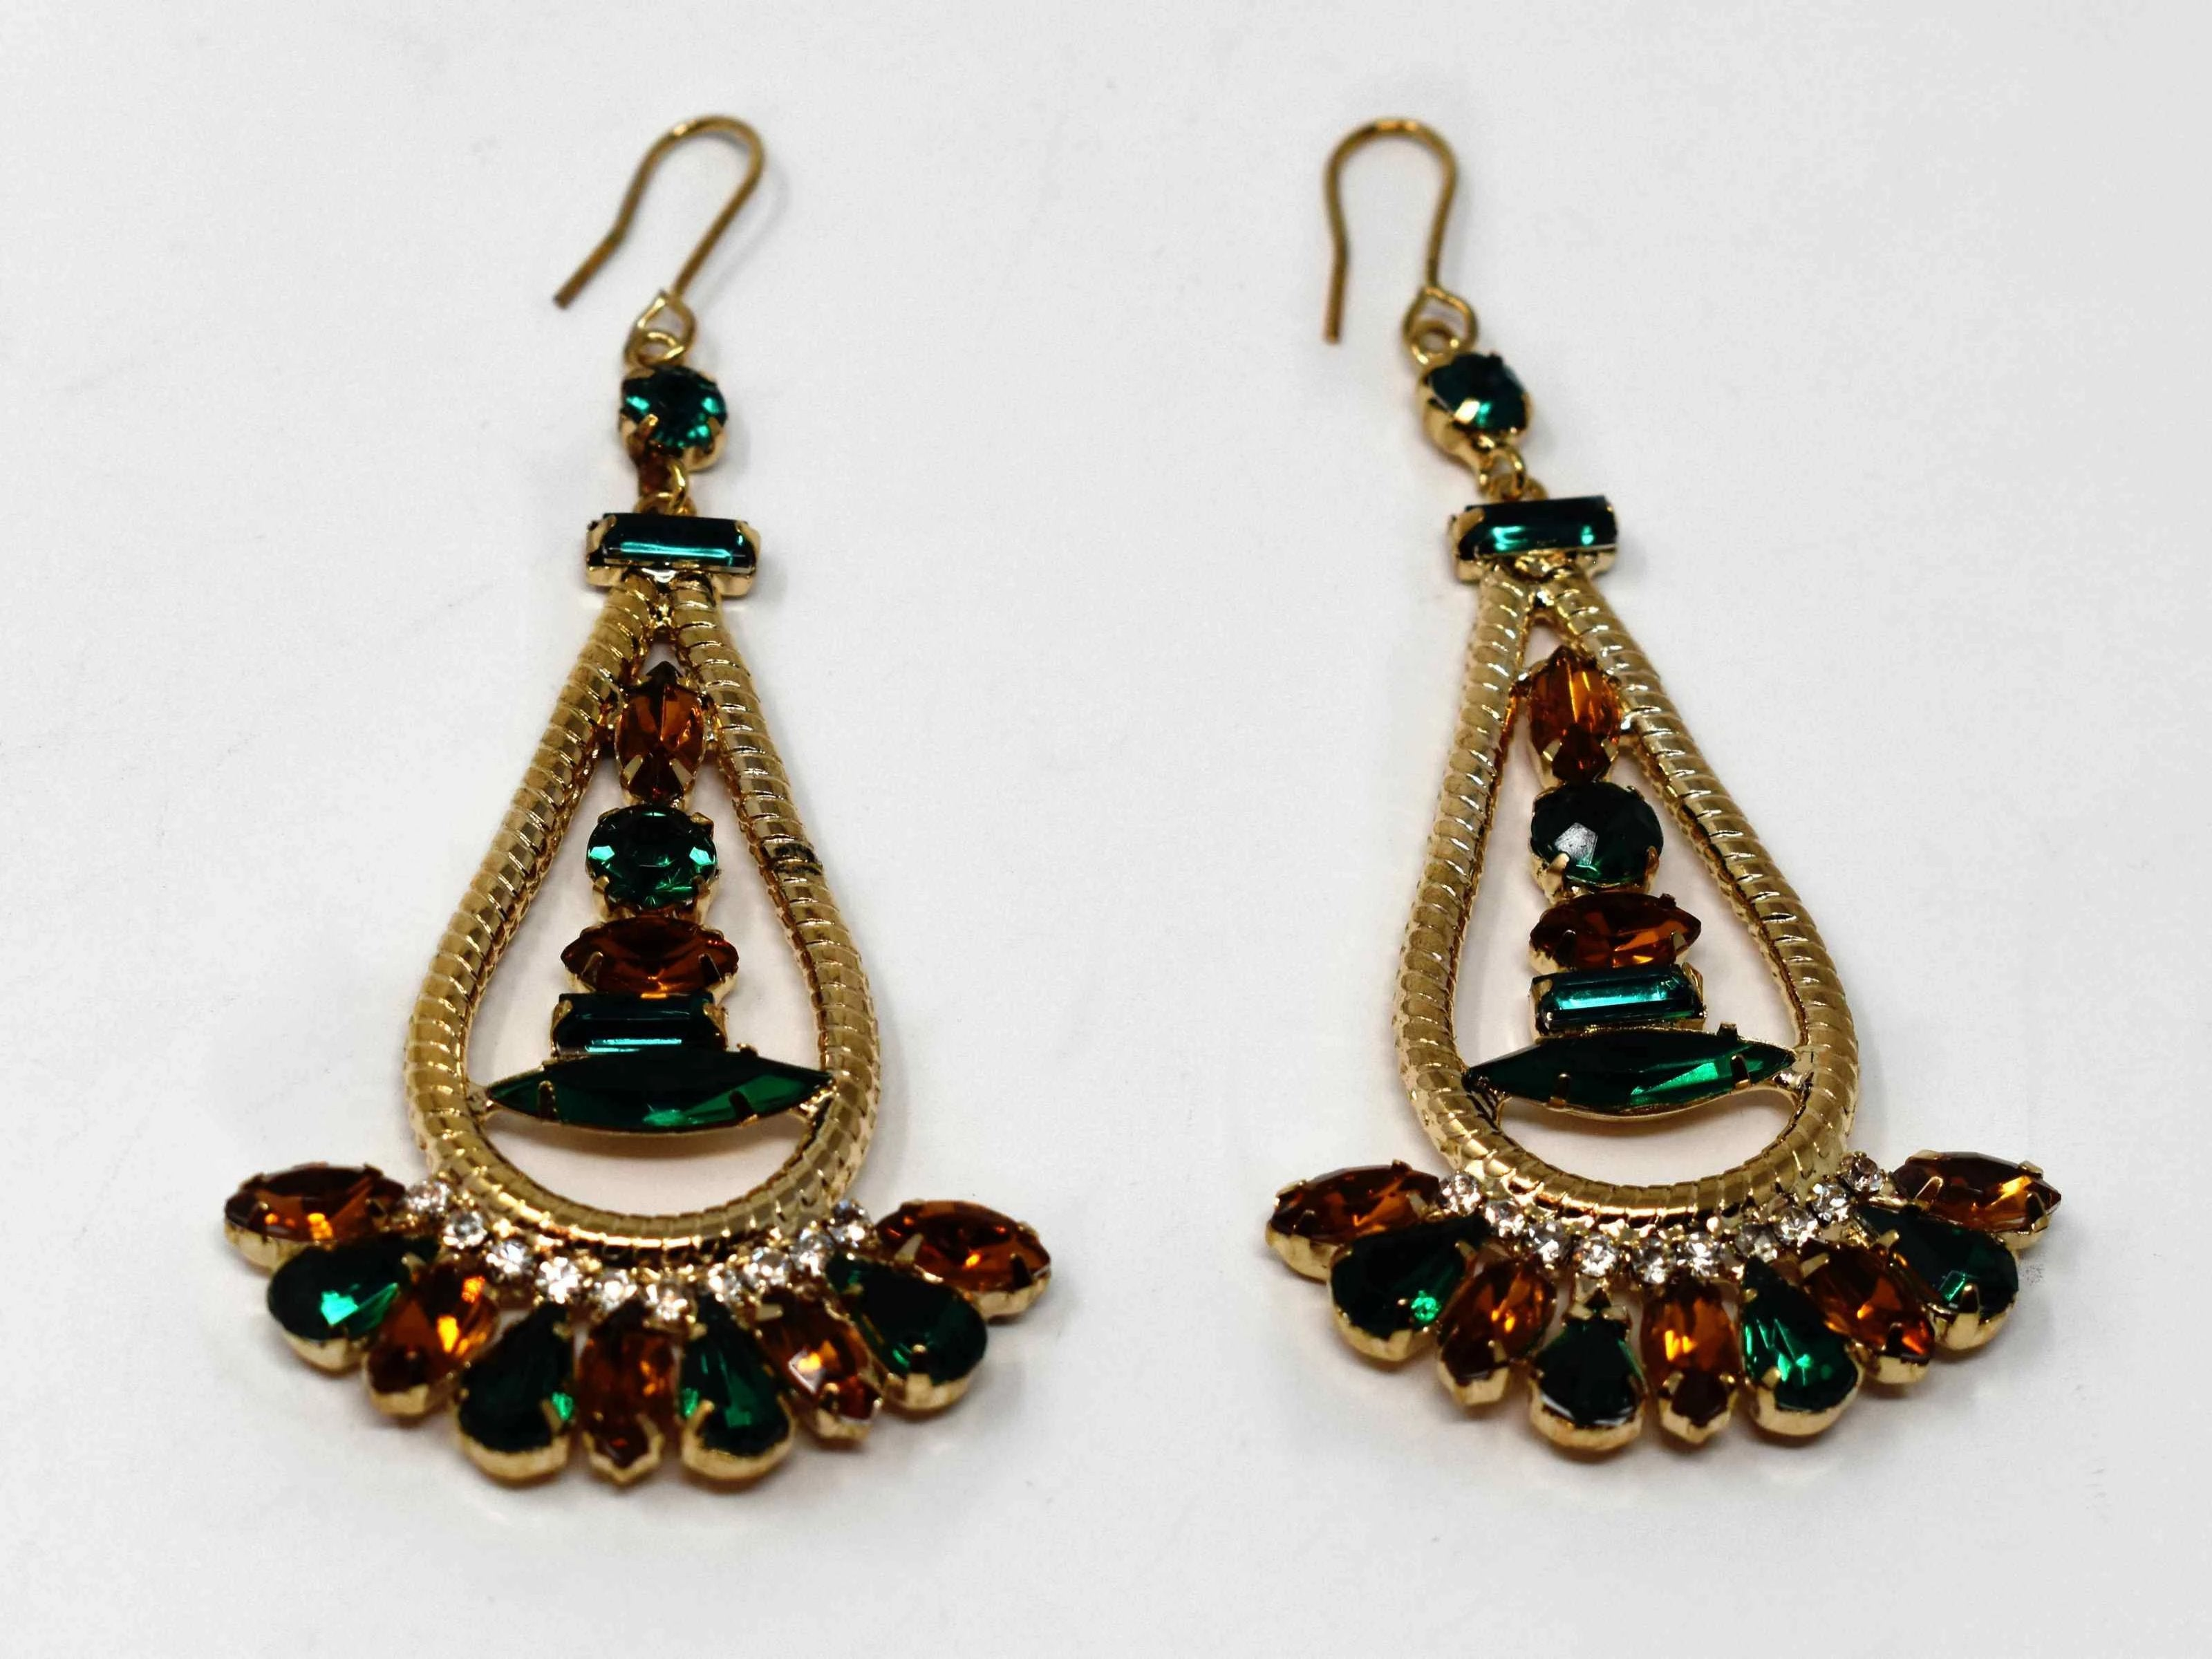 Anemone is a gold with a bronze and green stone eye catching drop , dangle style earring. It comes with a fish hook clasp and is 3 inches in length.